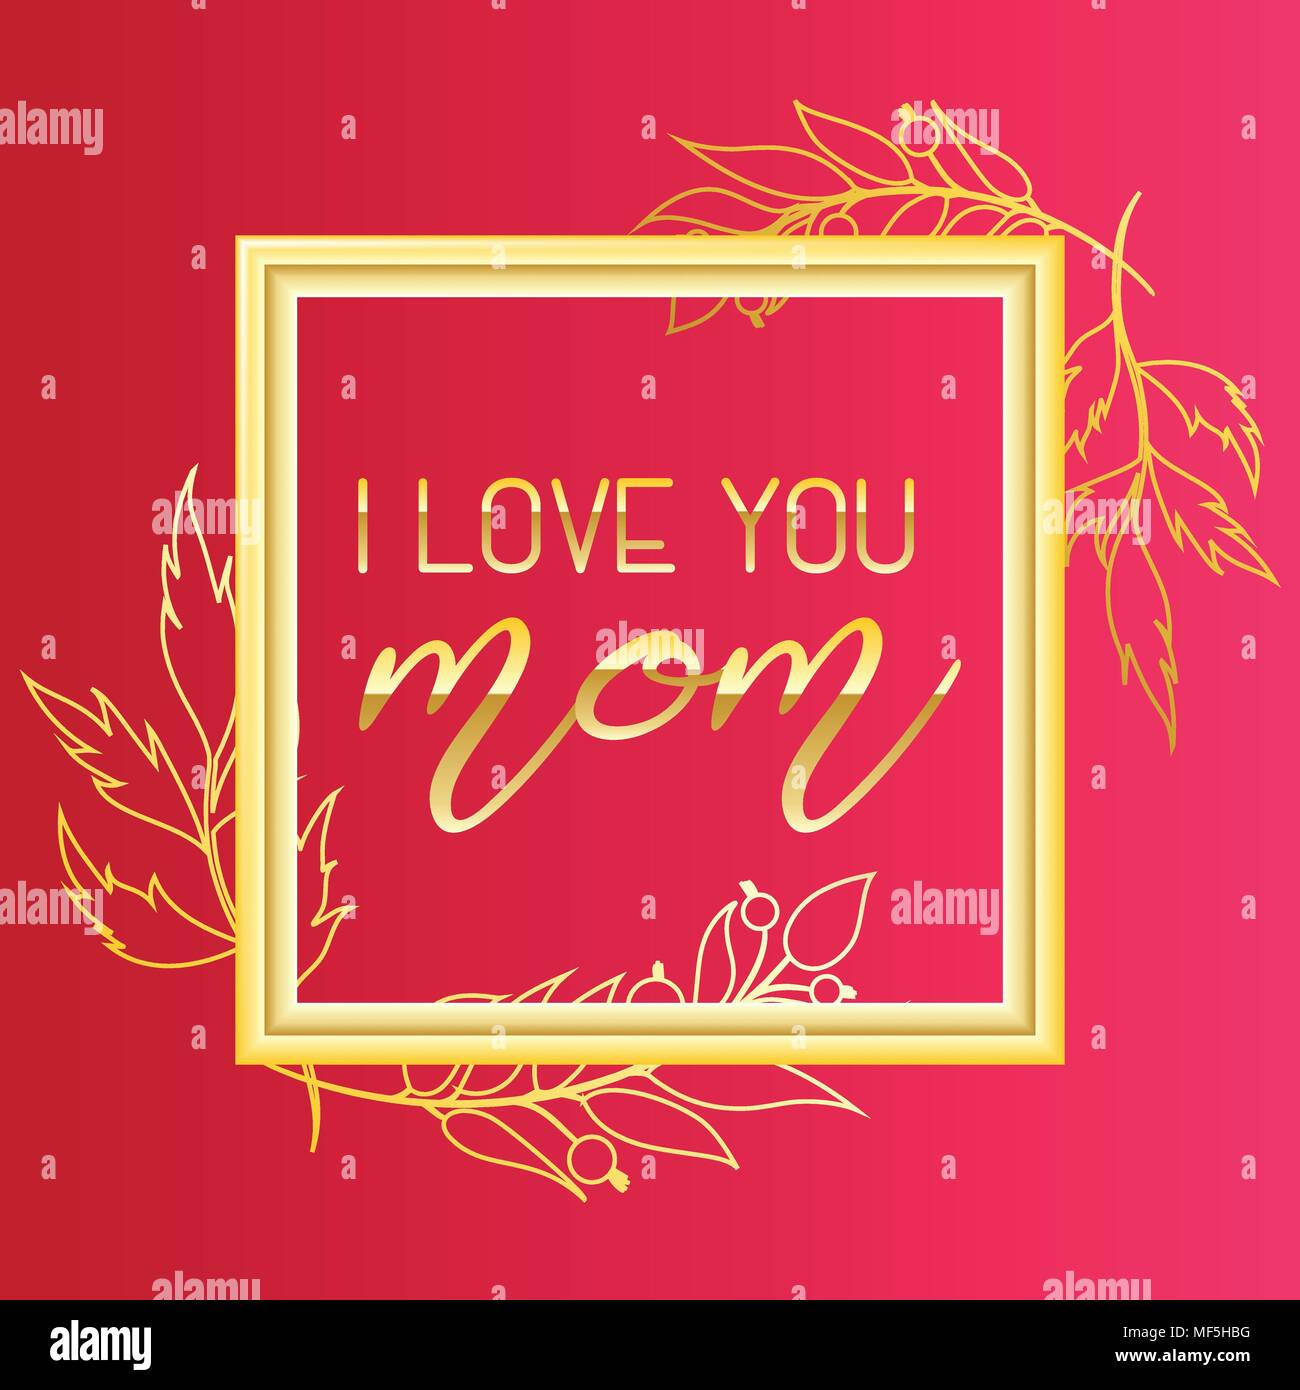 I Love You Mom Text Design In Realistic Gold Frame Style For Happy